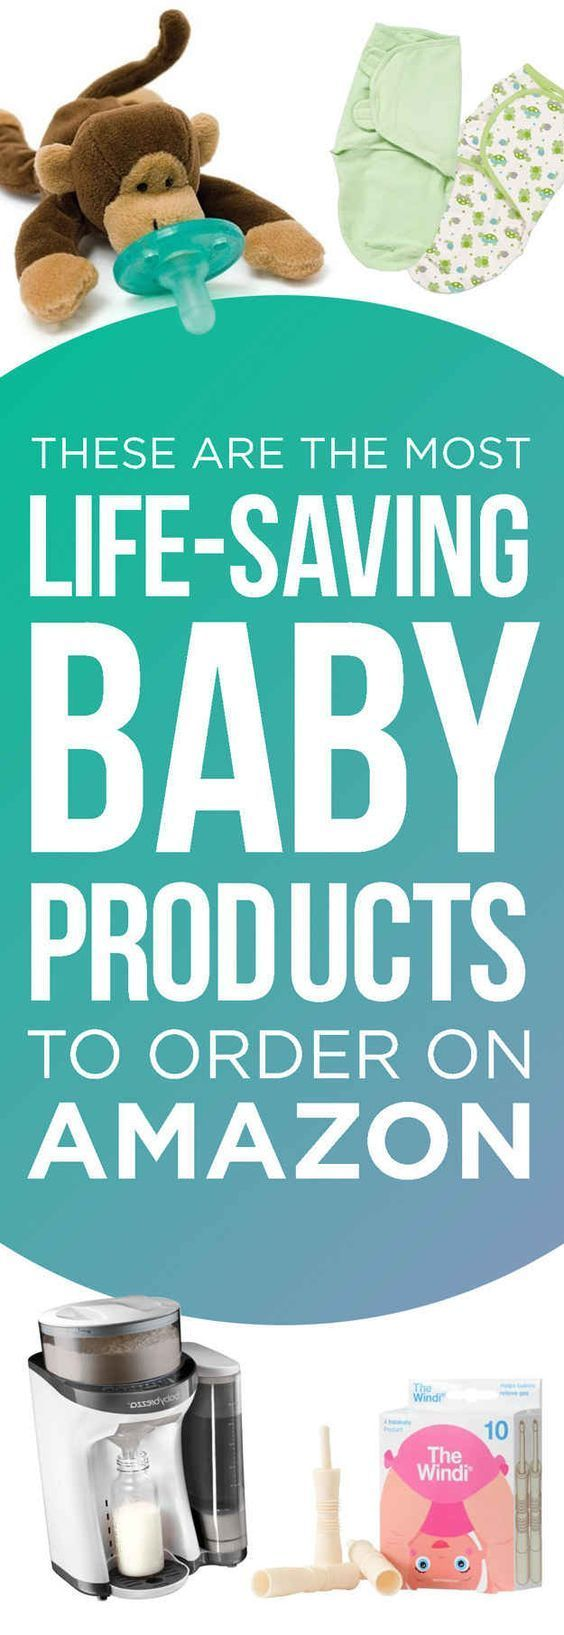 The Most Life-Saving Baby Products To Order On Amazon Remember correctly when I have a little one or for all of those baby showers I keep getting invited to!